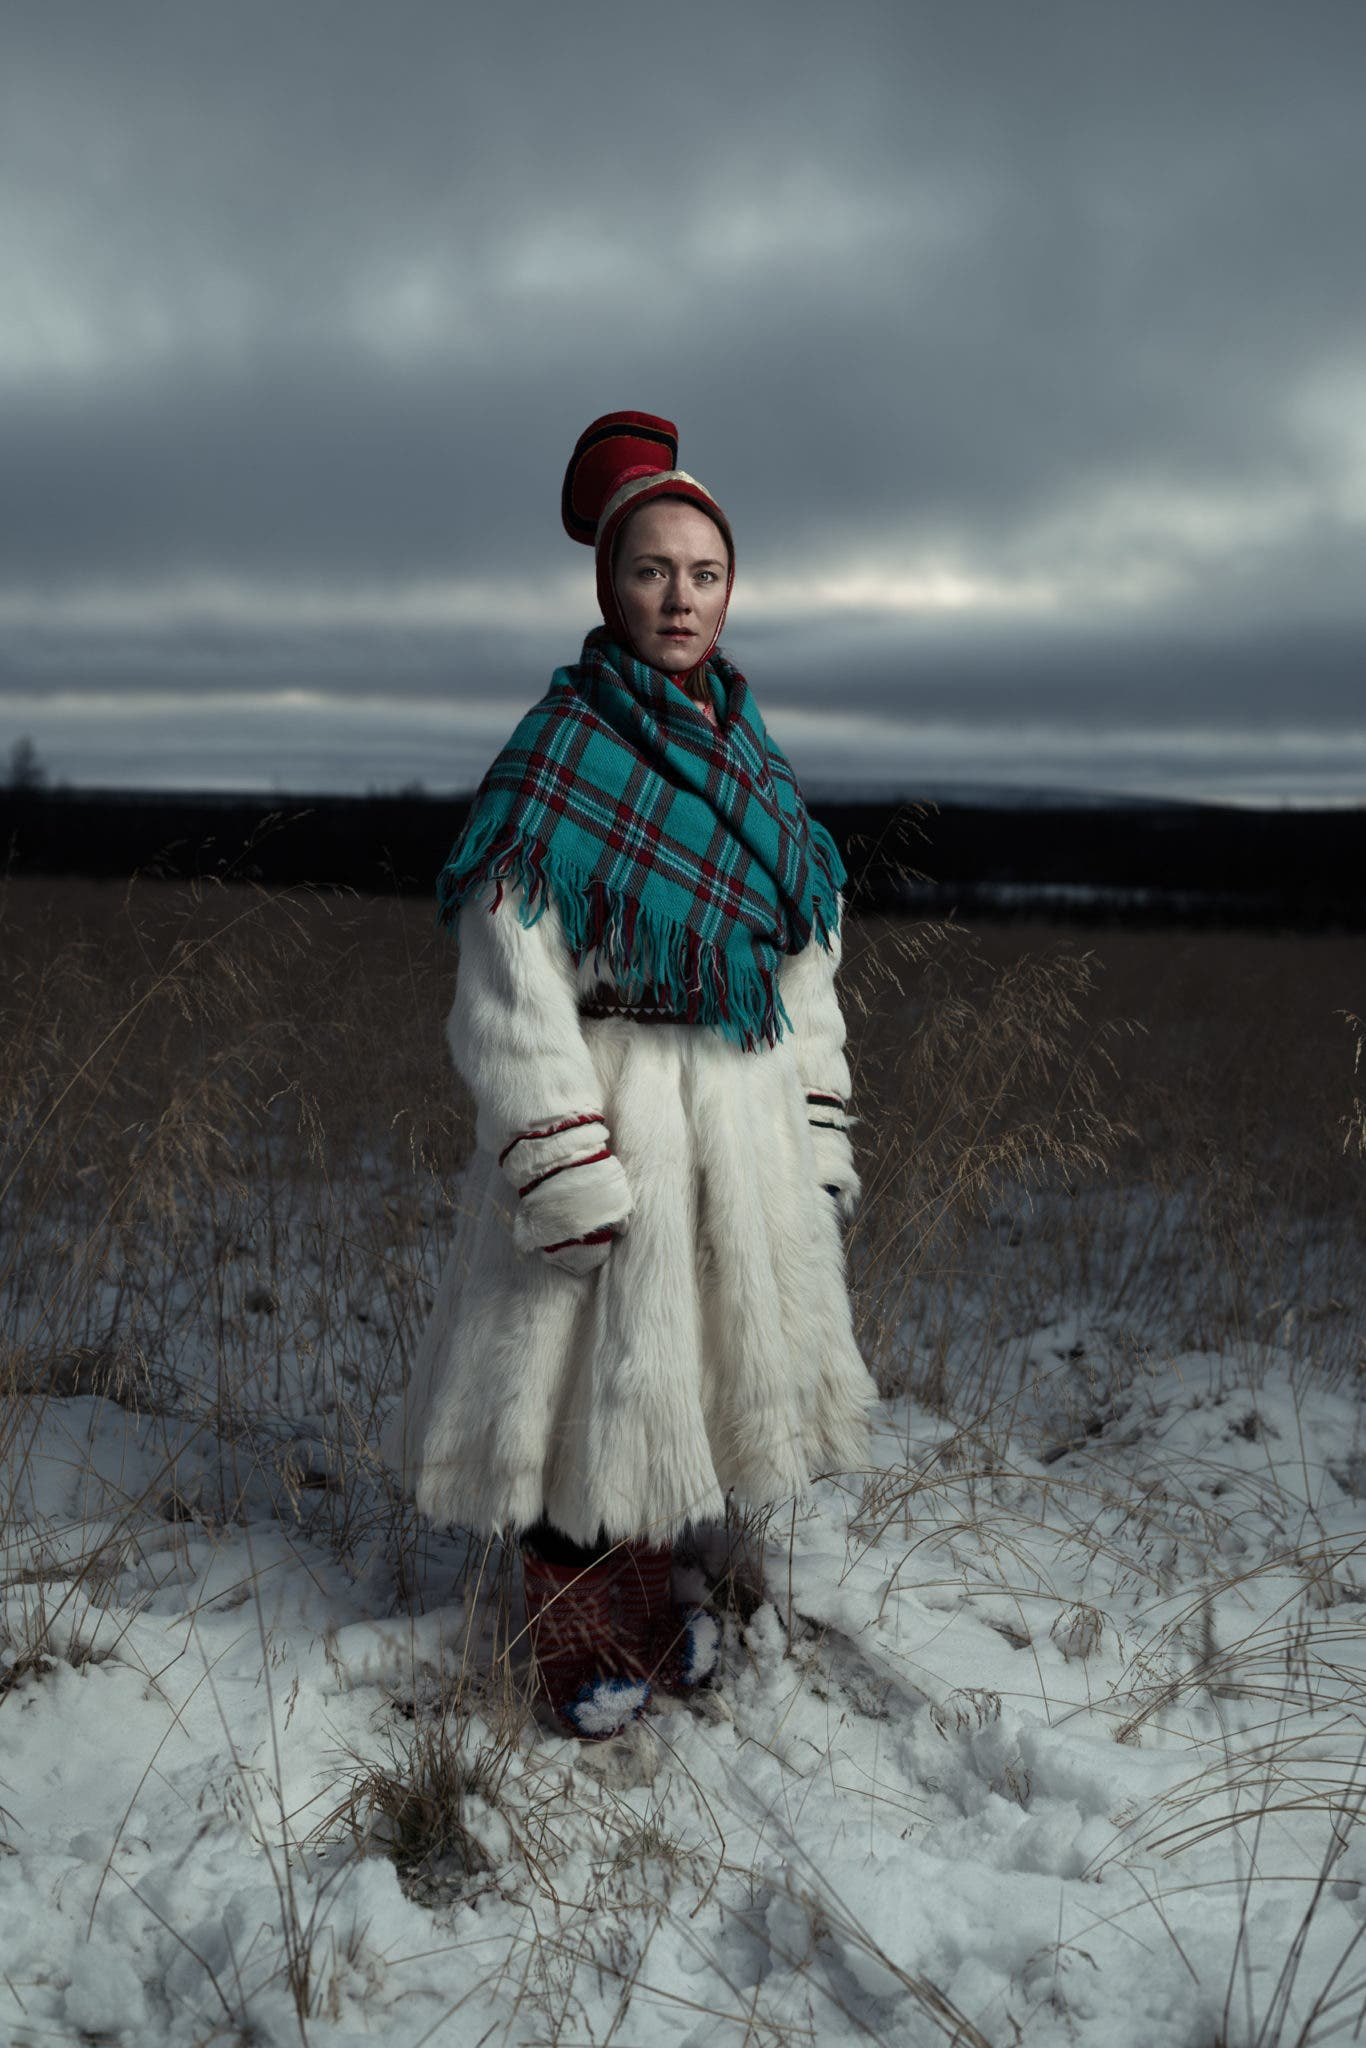 Jarle Hagan's Documentary Style Portraits of the Sami People of Norway